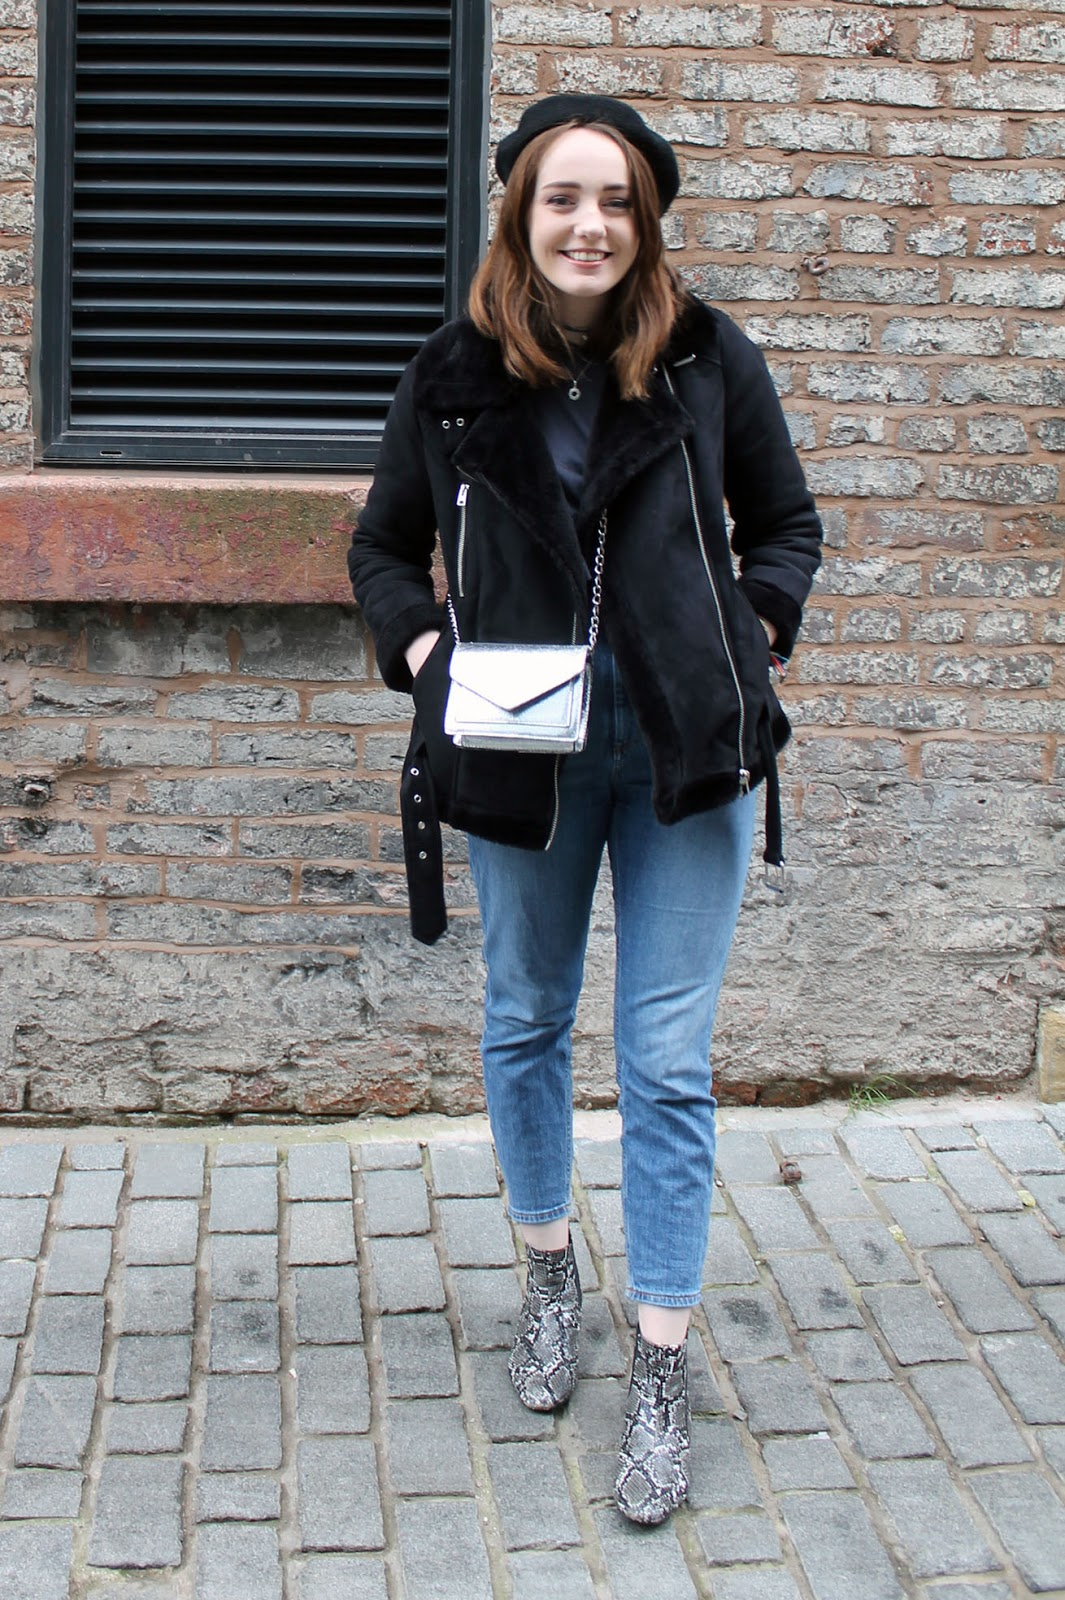 Liverpool fashion blogger, black beret and grey ruffle top, topshop biker coat, silver box bag, ASOS farleigh jeans and snake print boots